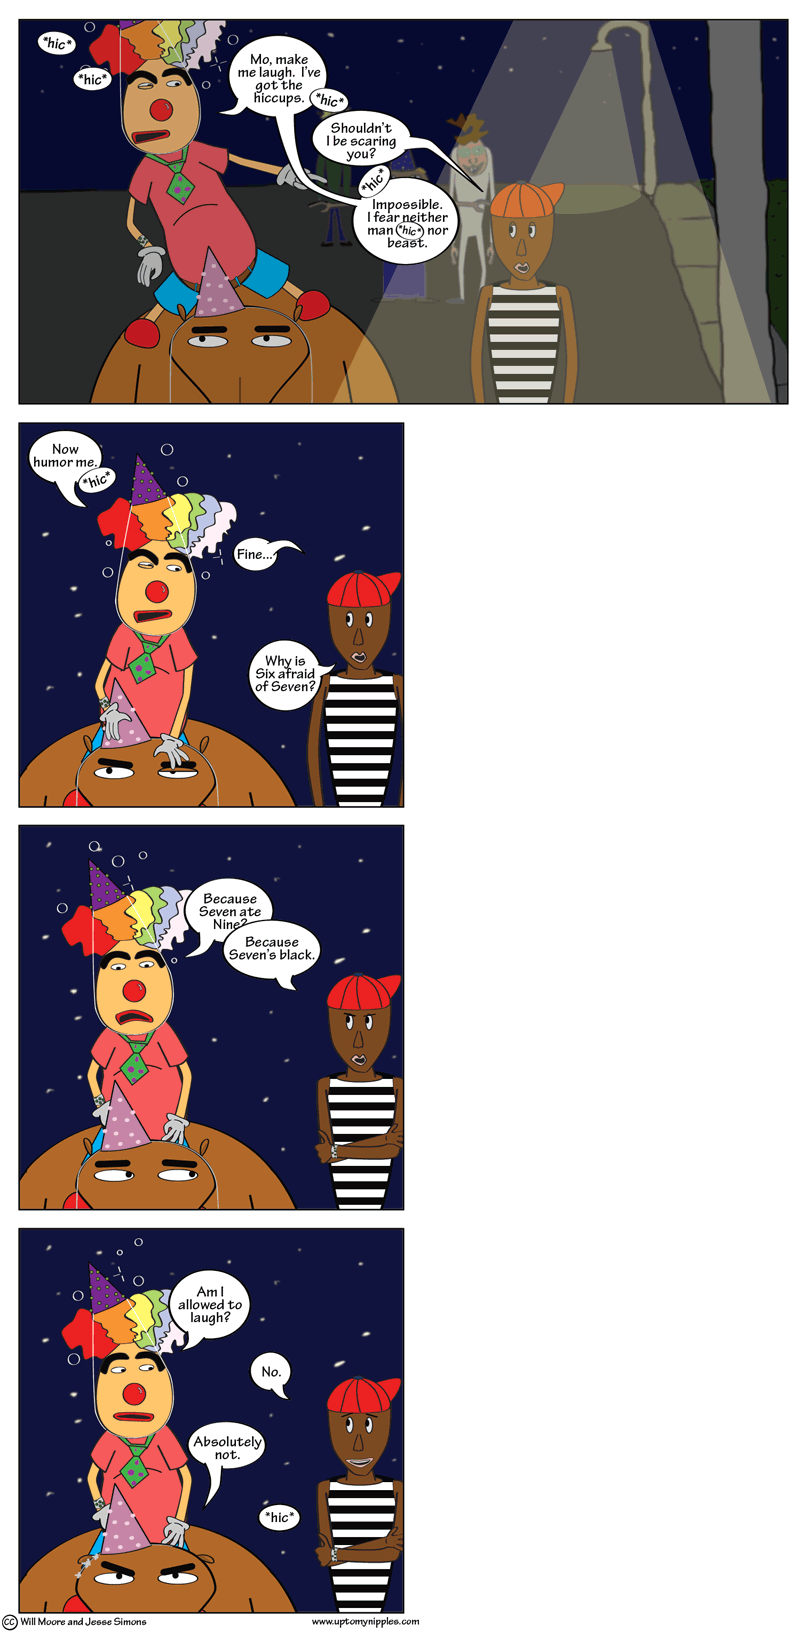 The Hiccoughs comic